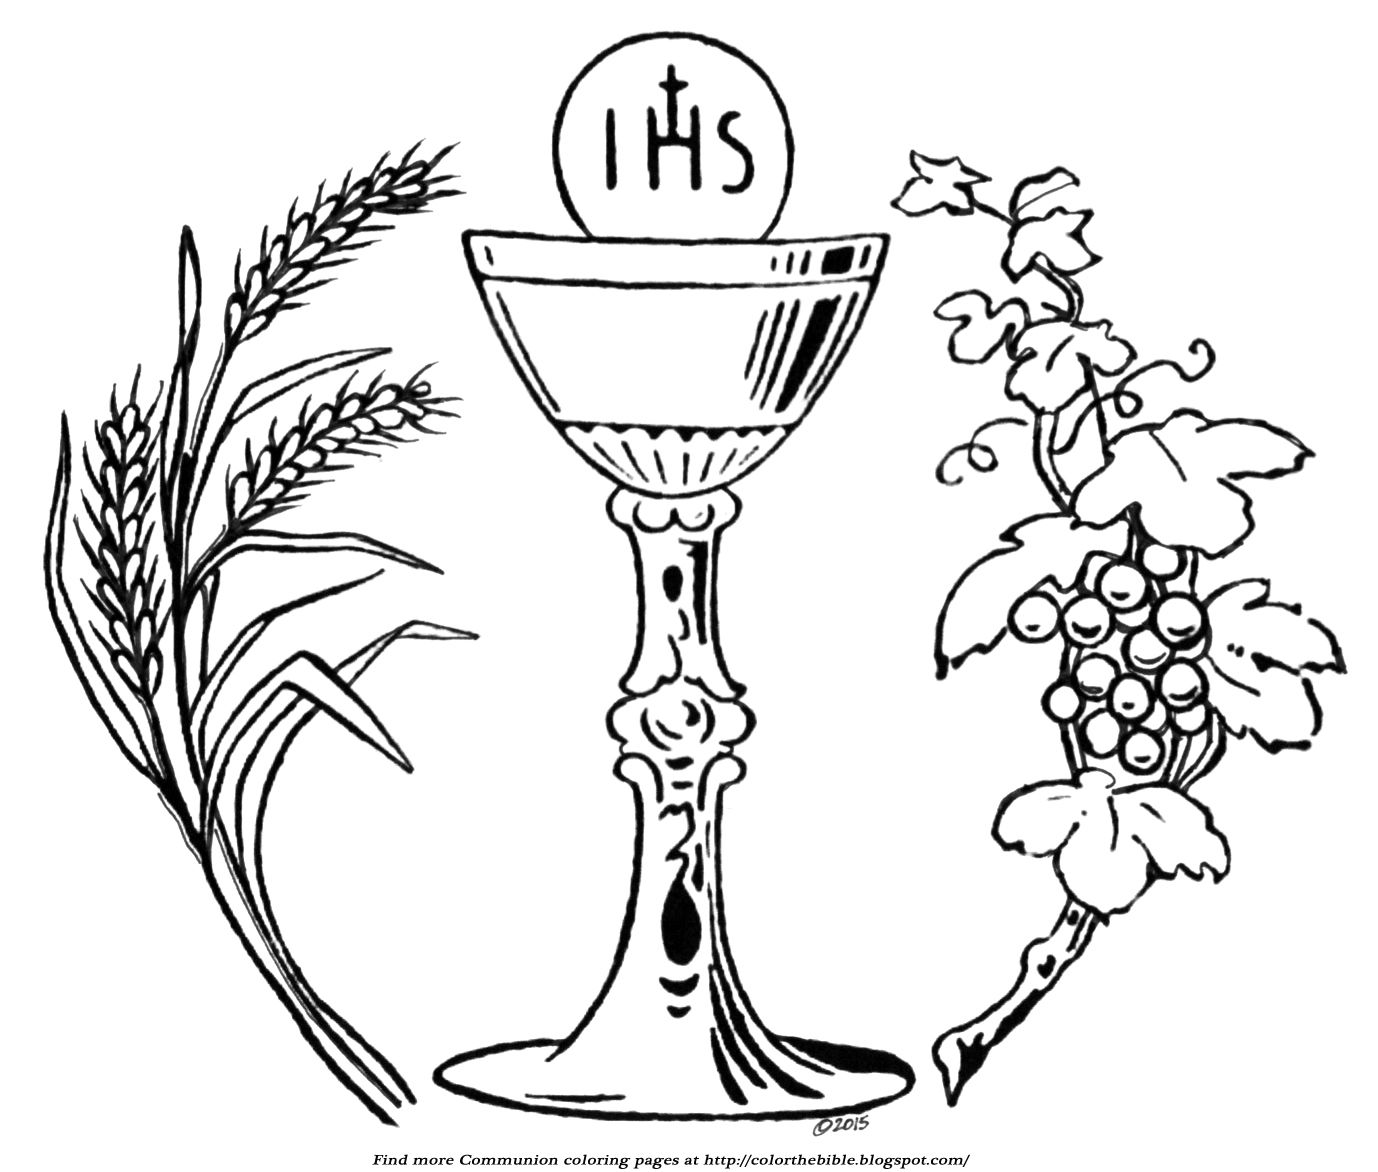 Chalice clipart logo. Sensational coloring page holy